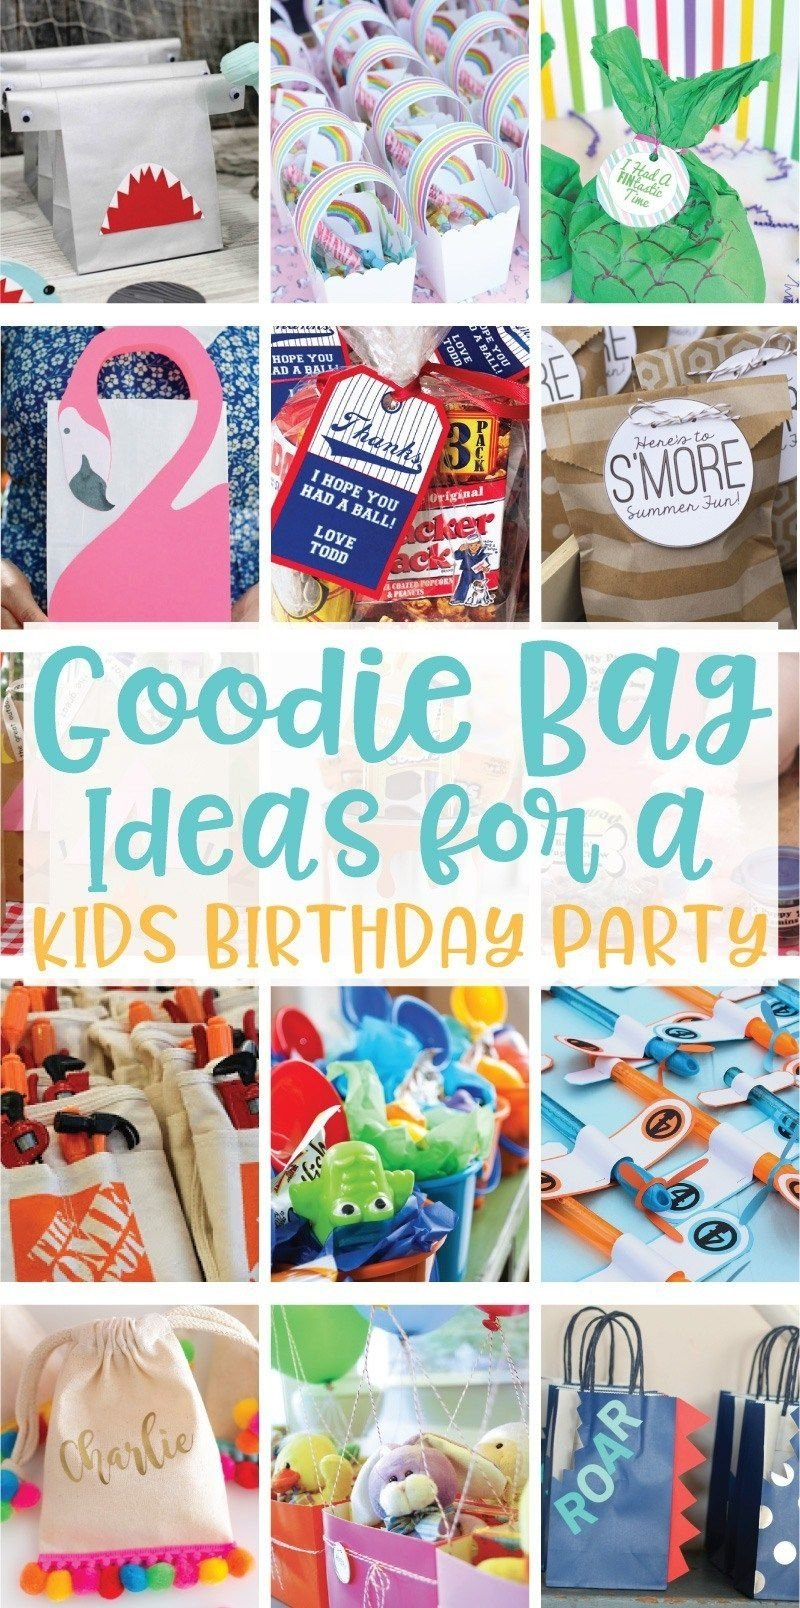 10 Amazing Goodie Bag Ideas For Birthday Party 20 creative goodie bag ideas for kids birthday parties on goodie 4